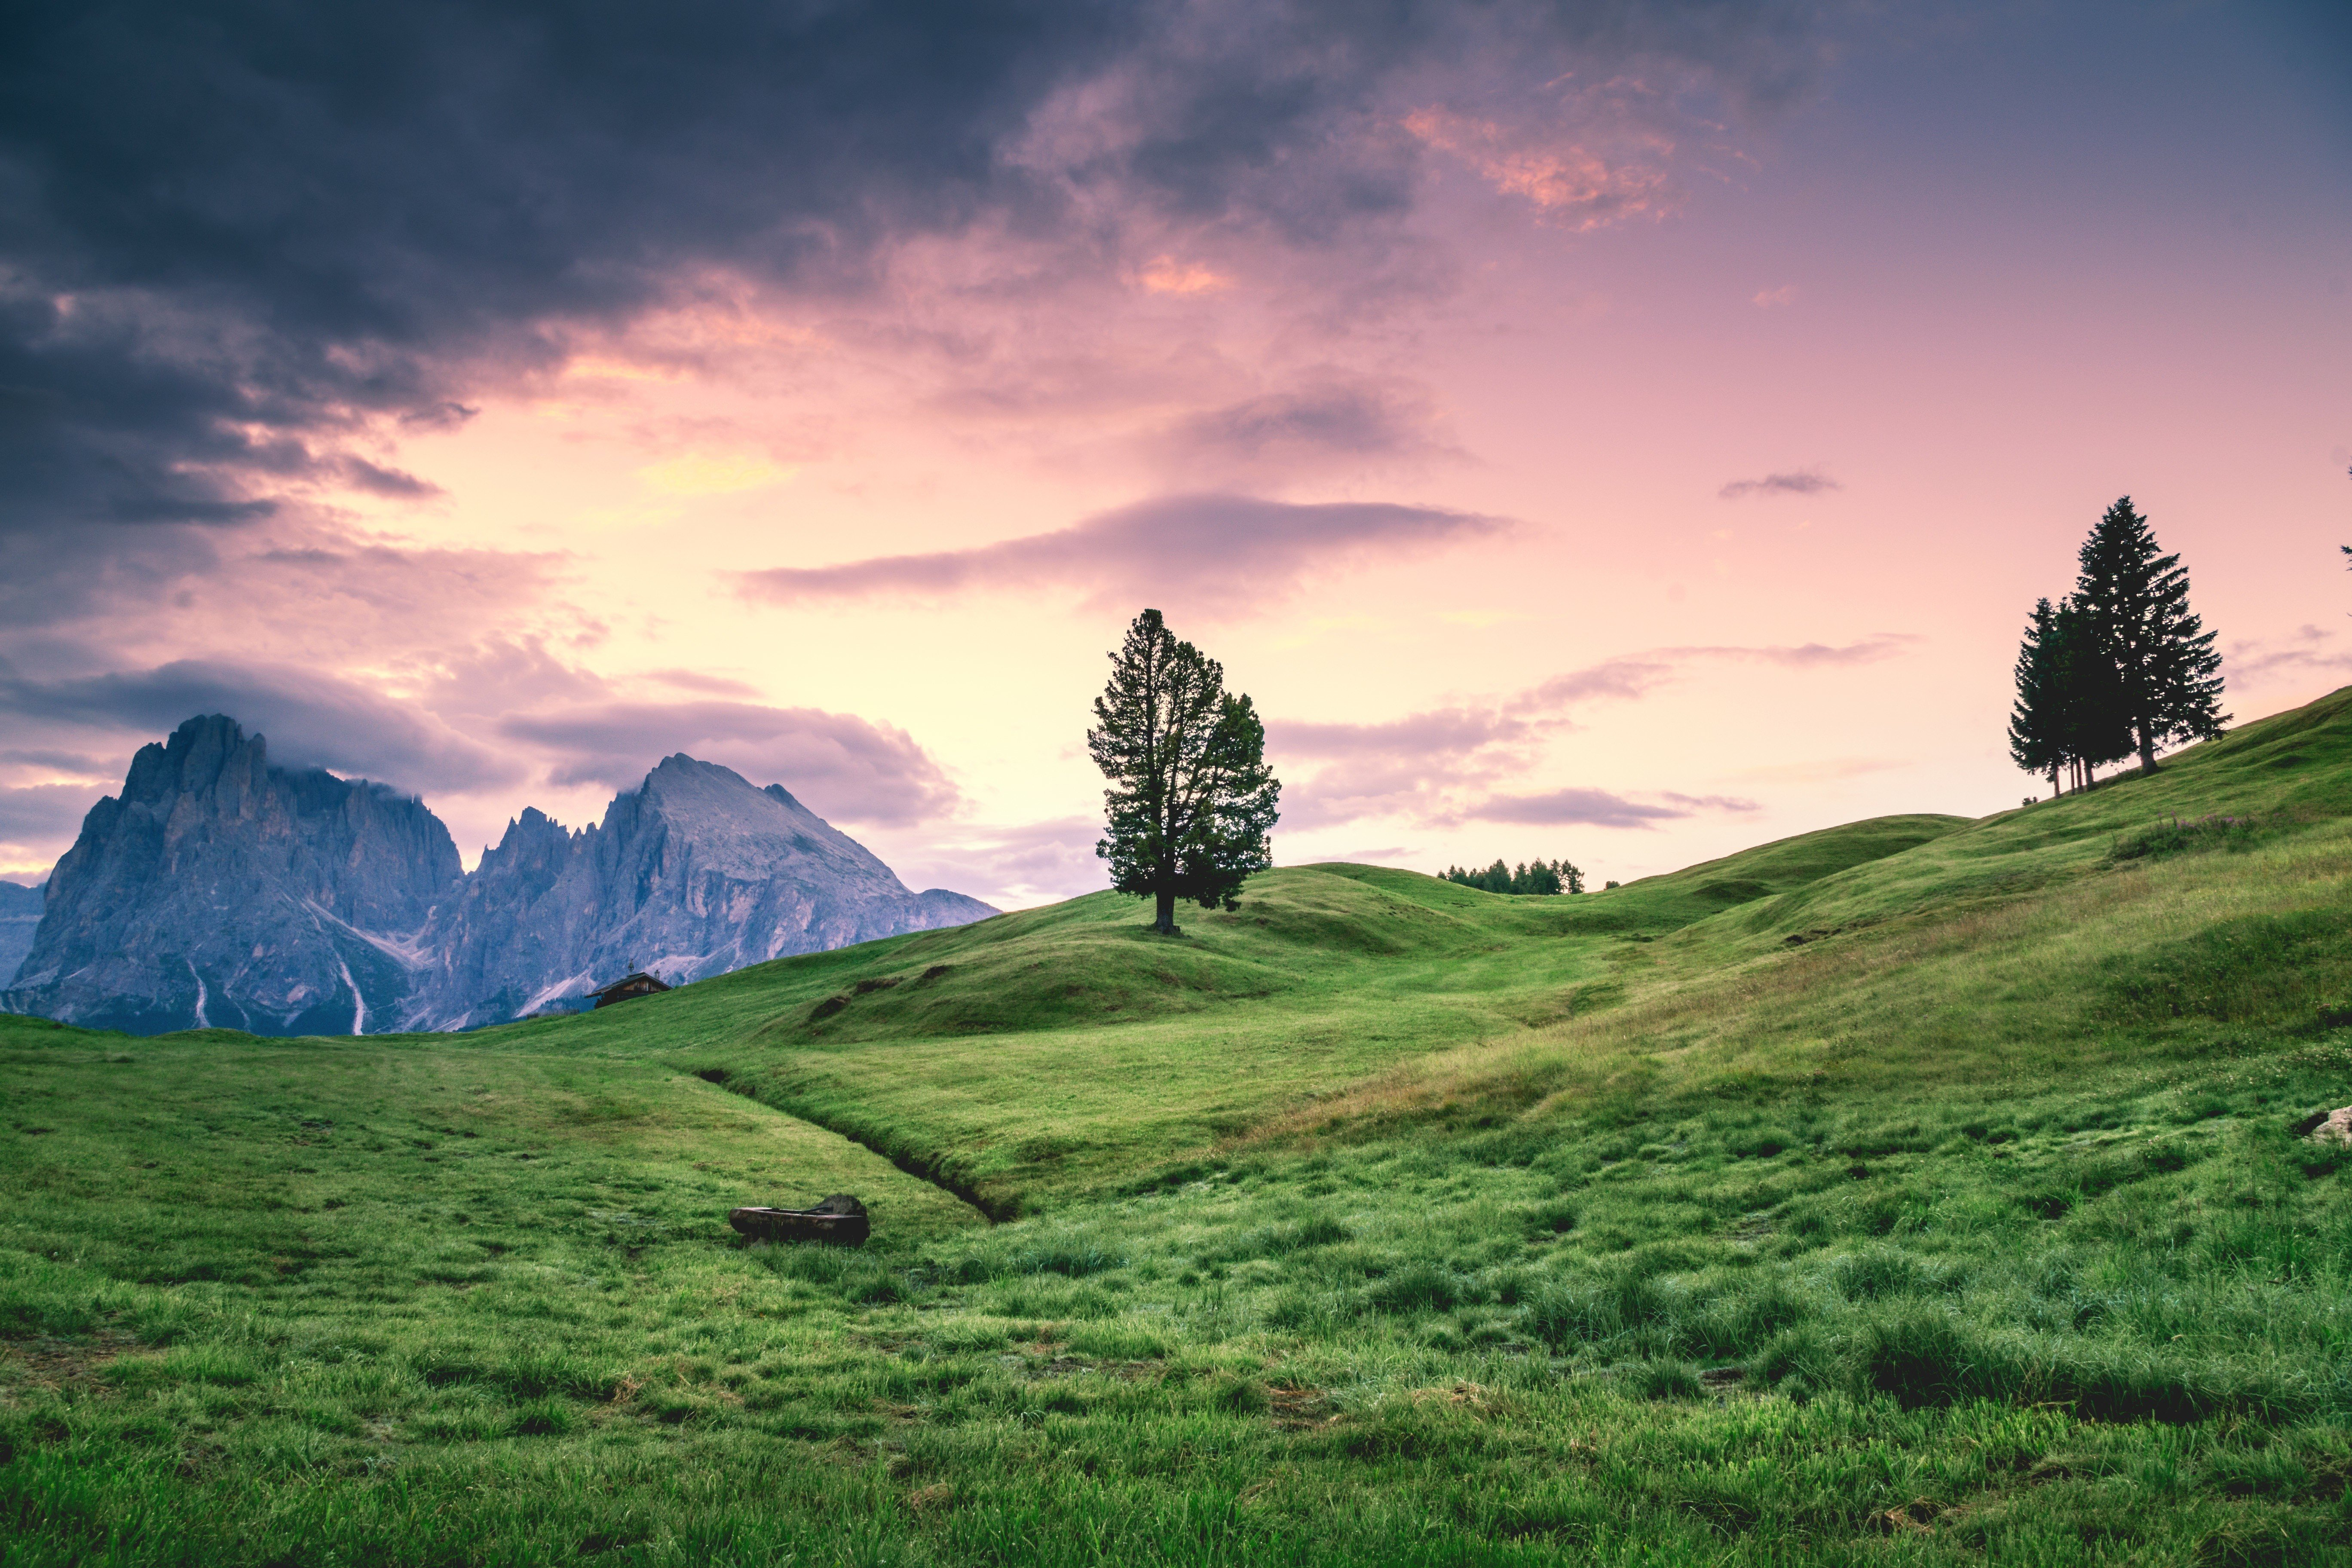 trees, Mountains, Sky, Field, Nature, Landscape Wallpaper